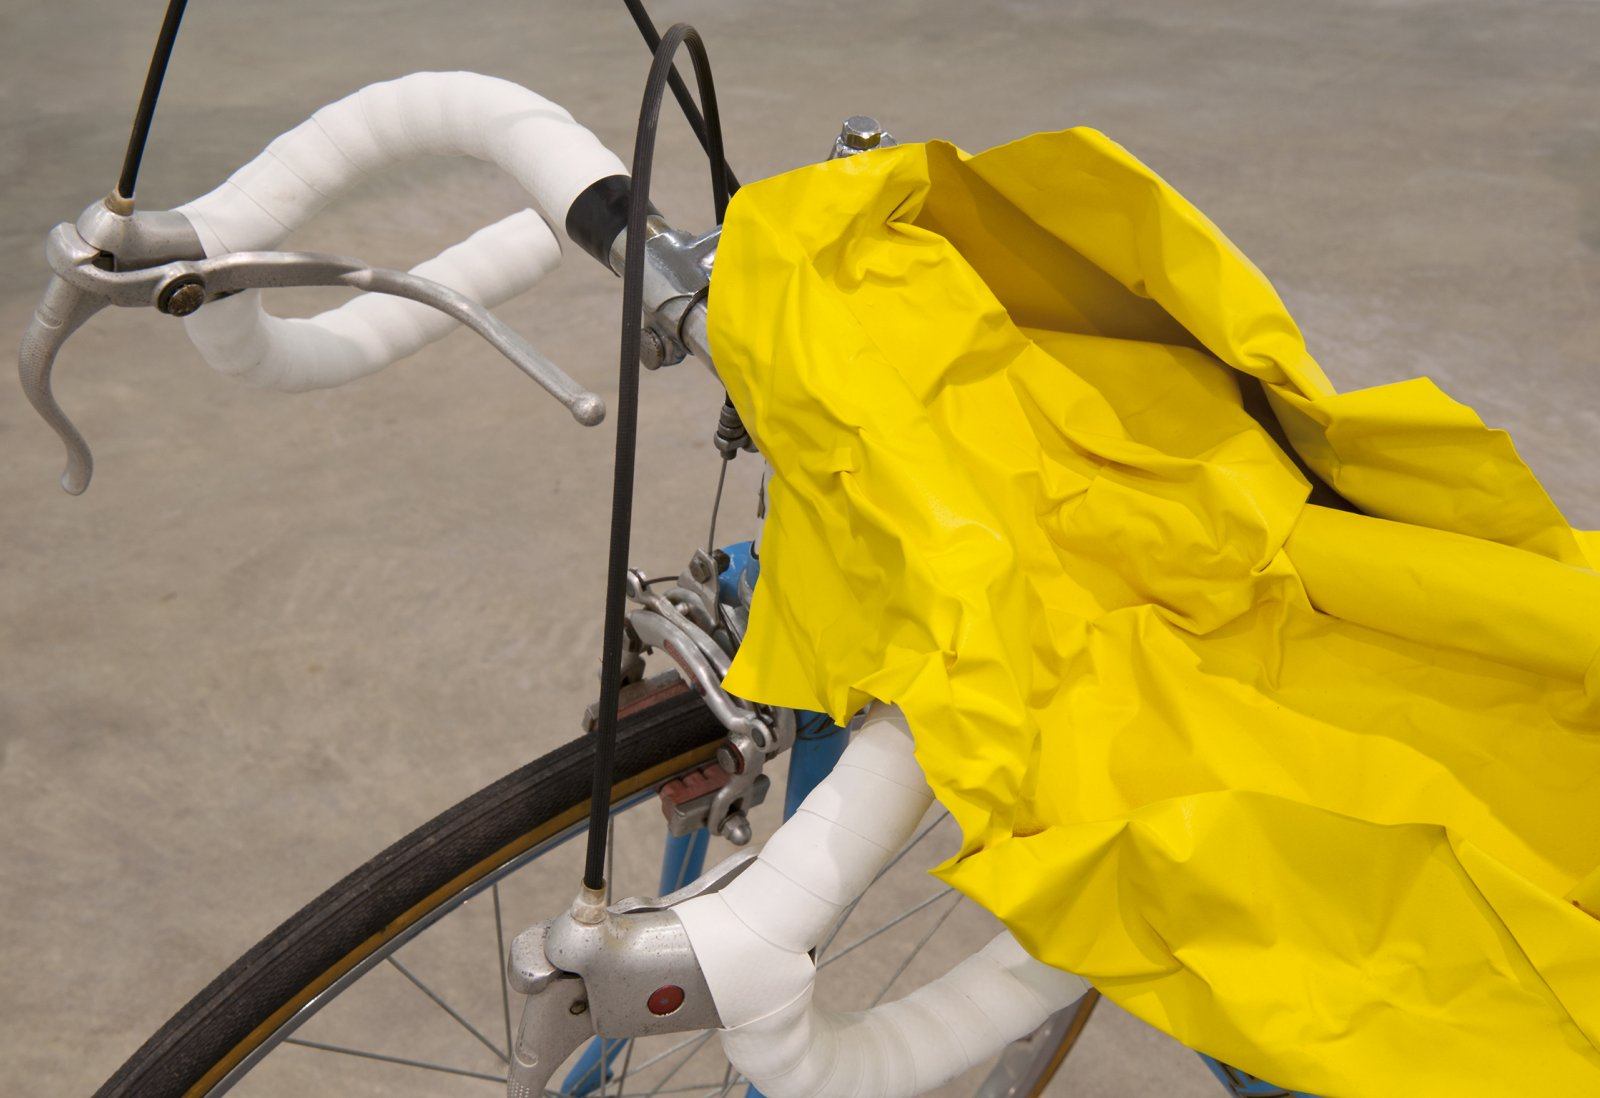 Judy Radul, Object Analysis Spectator Poem (Bicycle) (detail), 2012, painted copper, bicycle, colour photograph, bicycle: 38 x 26 x 58 in. (92 x 66 x 147 cm), photo: 8 x 11 x 5 in. (20 x 28 x 13 cm)   by Judy Radul